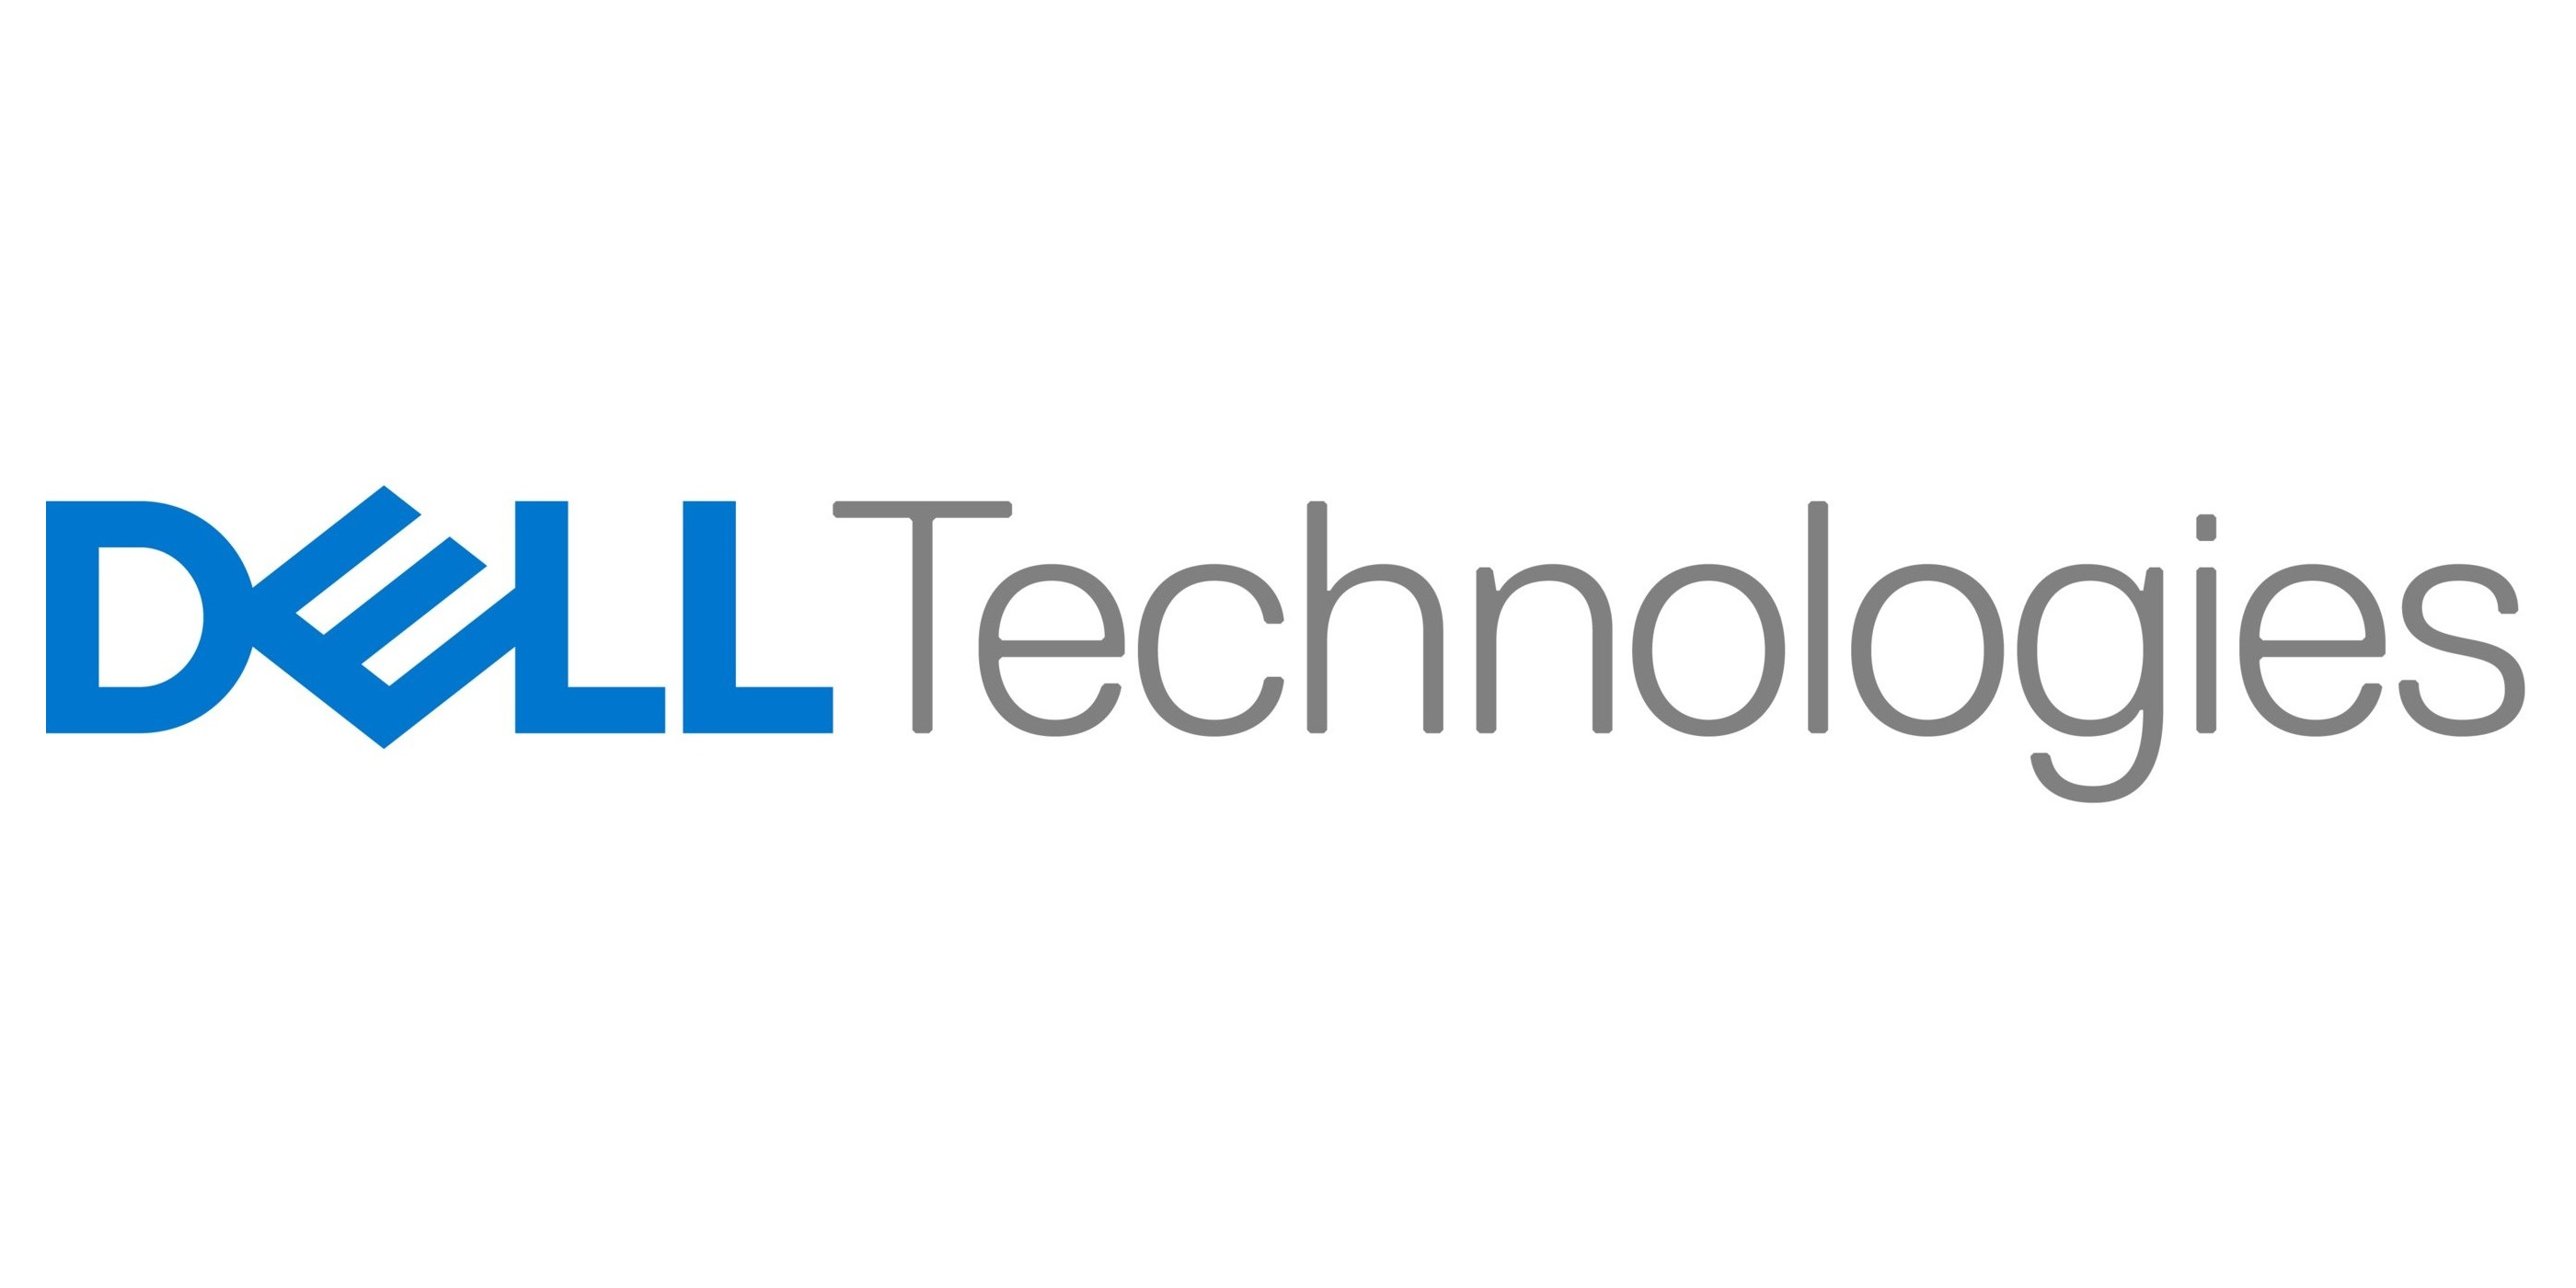 Dell Technologies reports that it beat market-analysis estimates for the sixth quarter running with its latest earning results thumbnail